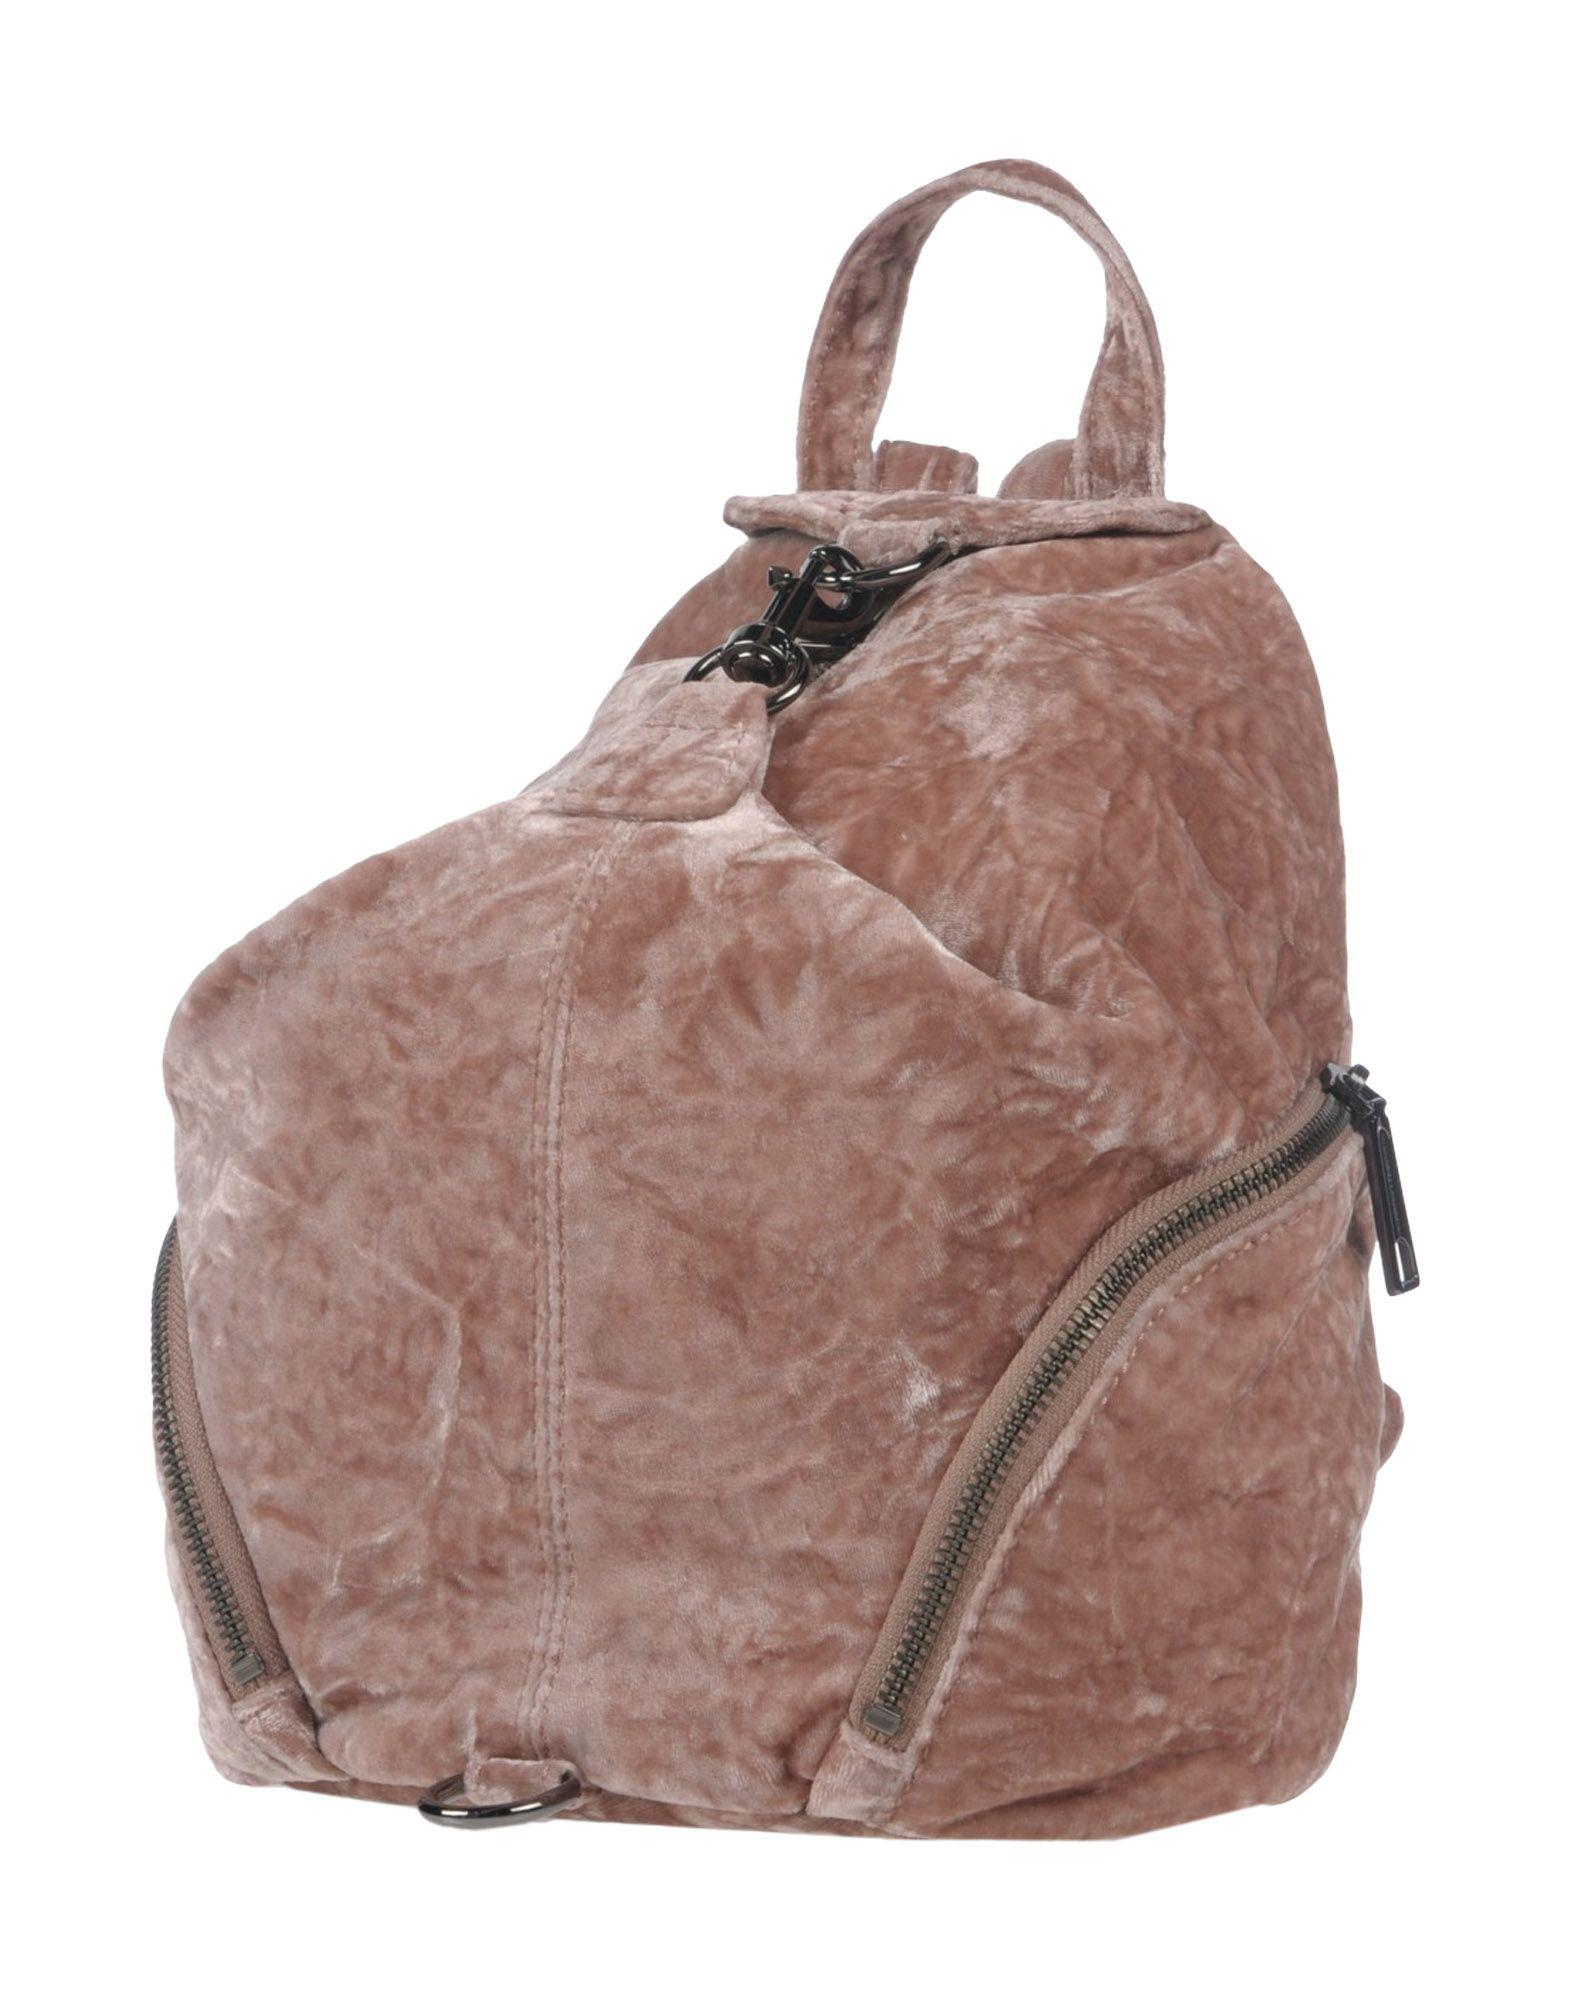 Rebecca Minkoff Backpacks & Fanny Packs In Pale Pink